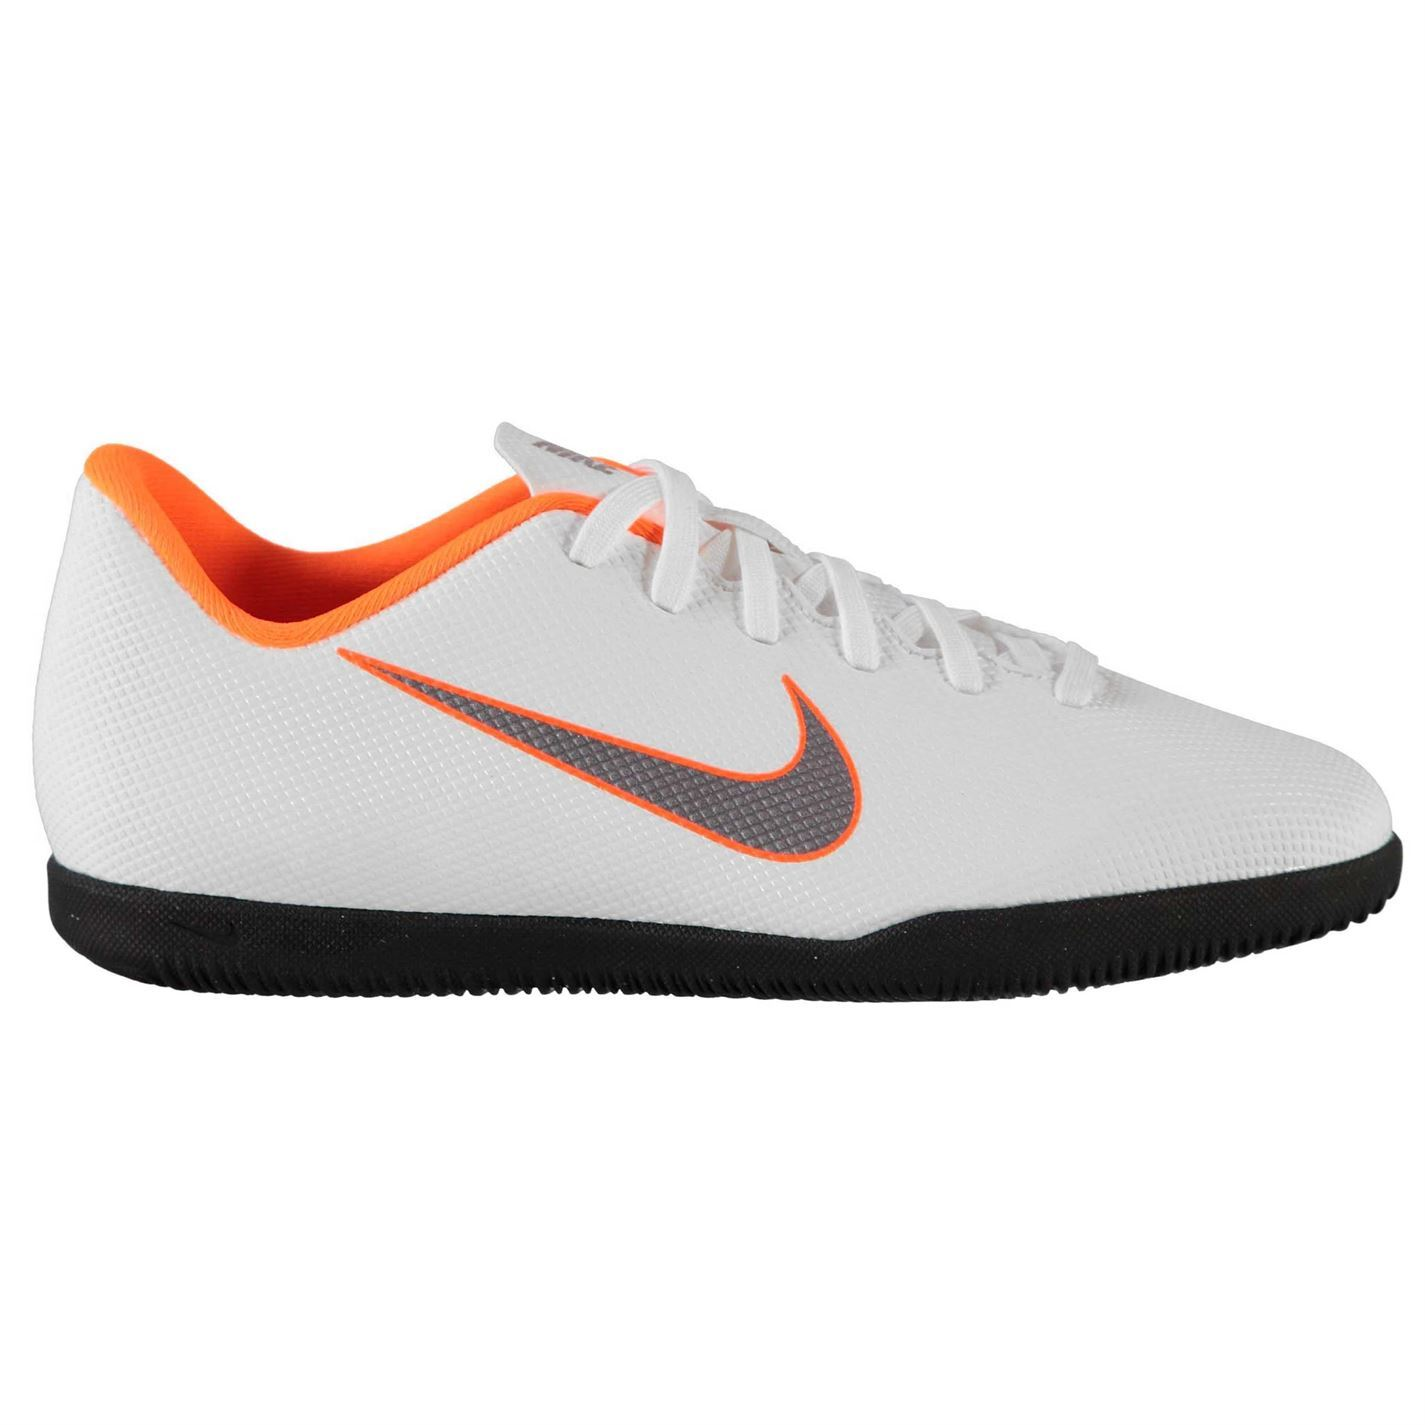 40563c0034d Soccer Club Indoor Vapor Juniors Mercurial Football Trainers Nike qE0tpwq